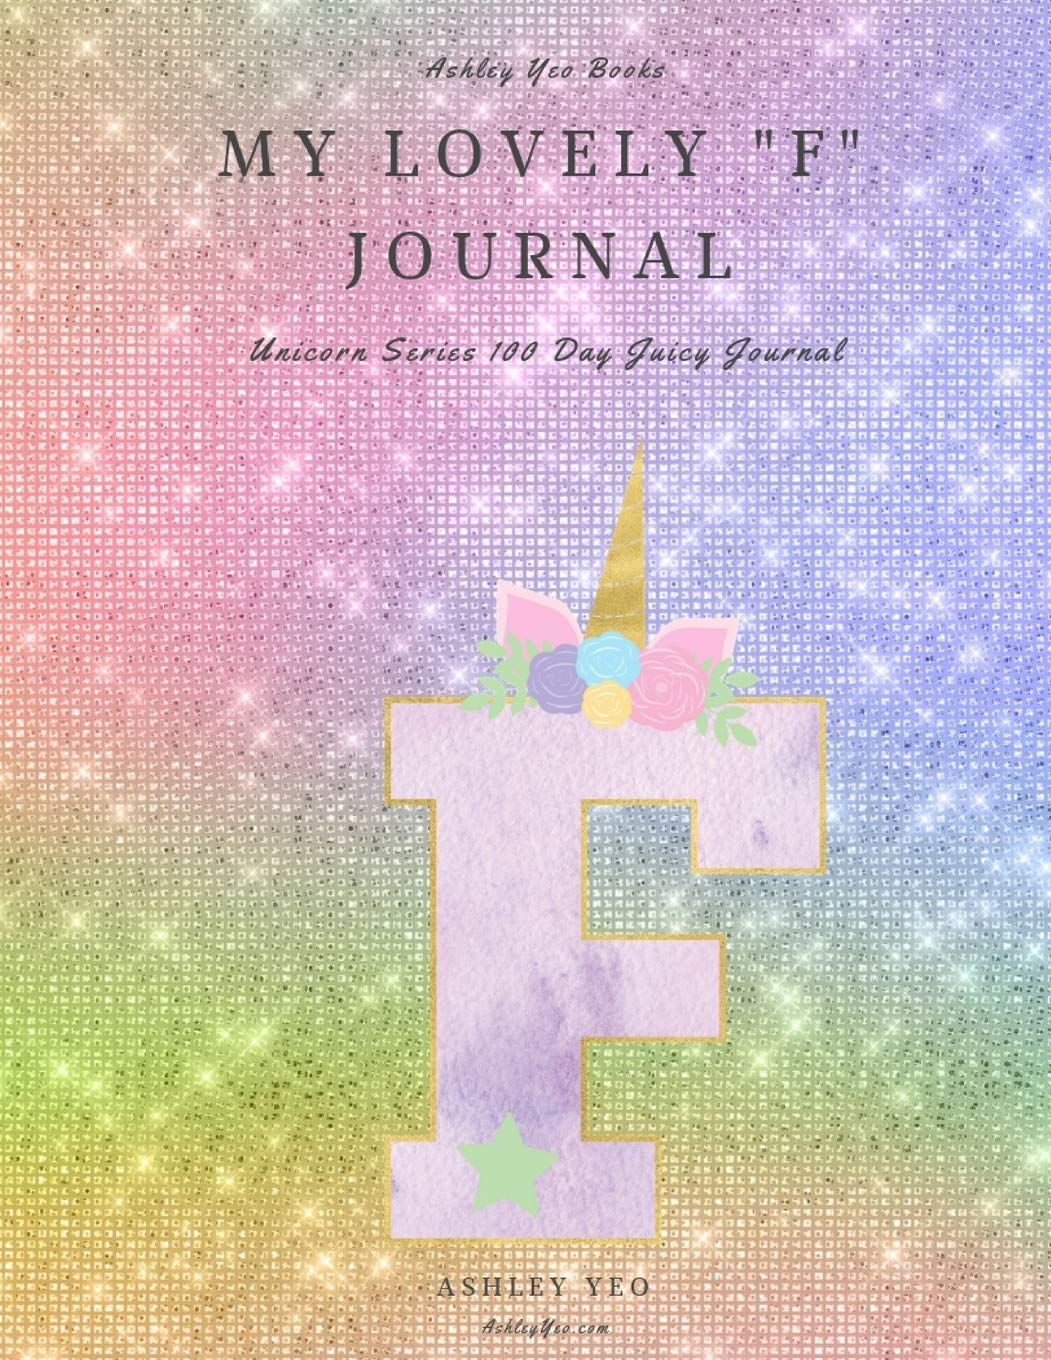 """My Lovely """"F"""" Journal: Unicorn Series 100 Day Juicy Journal"""